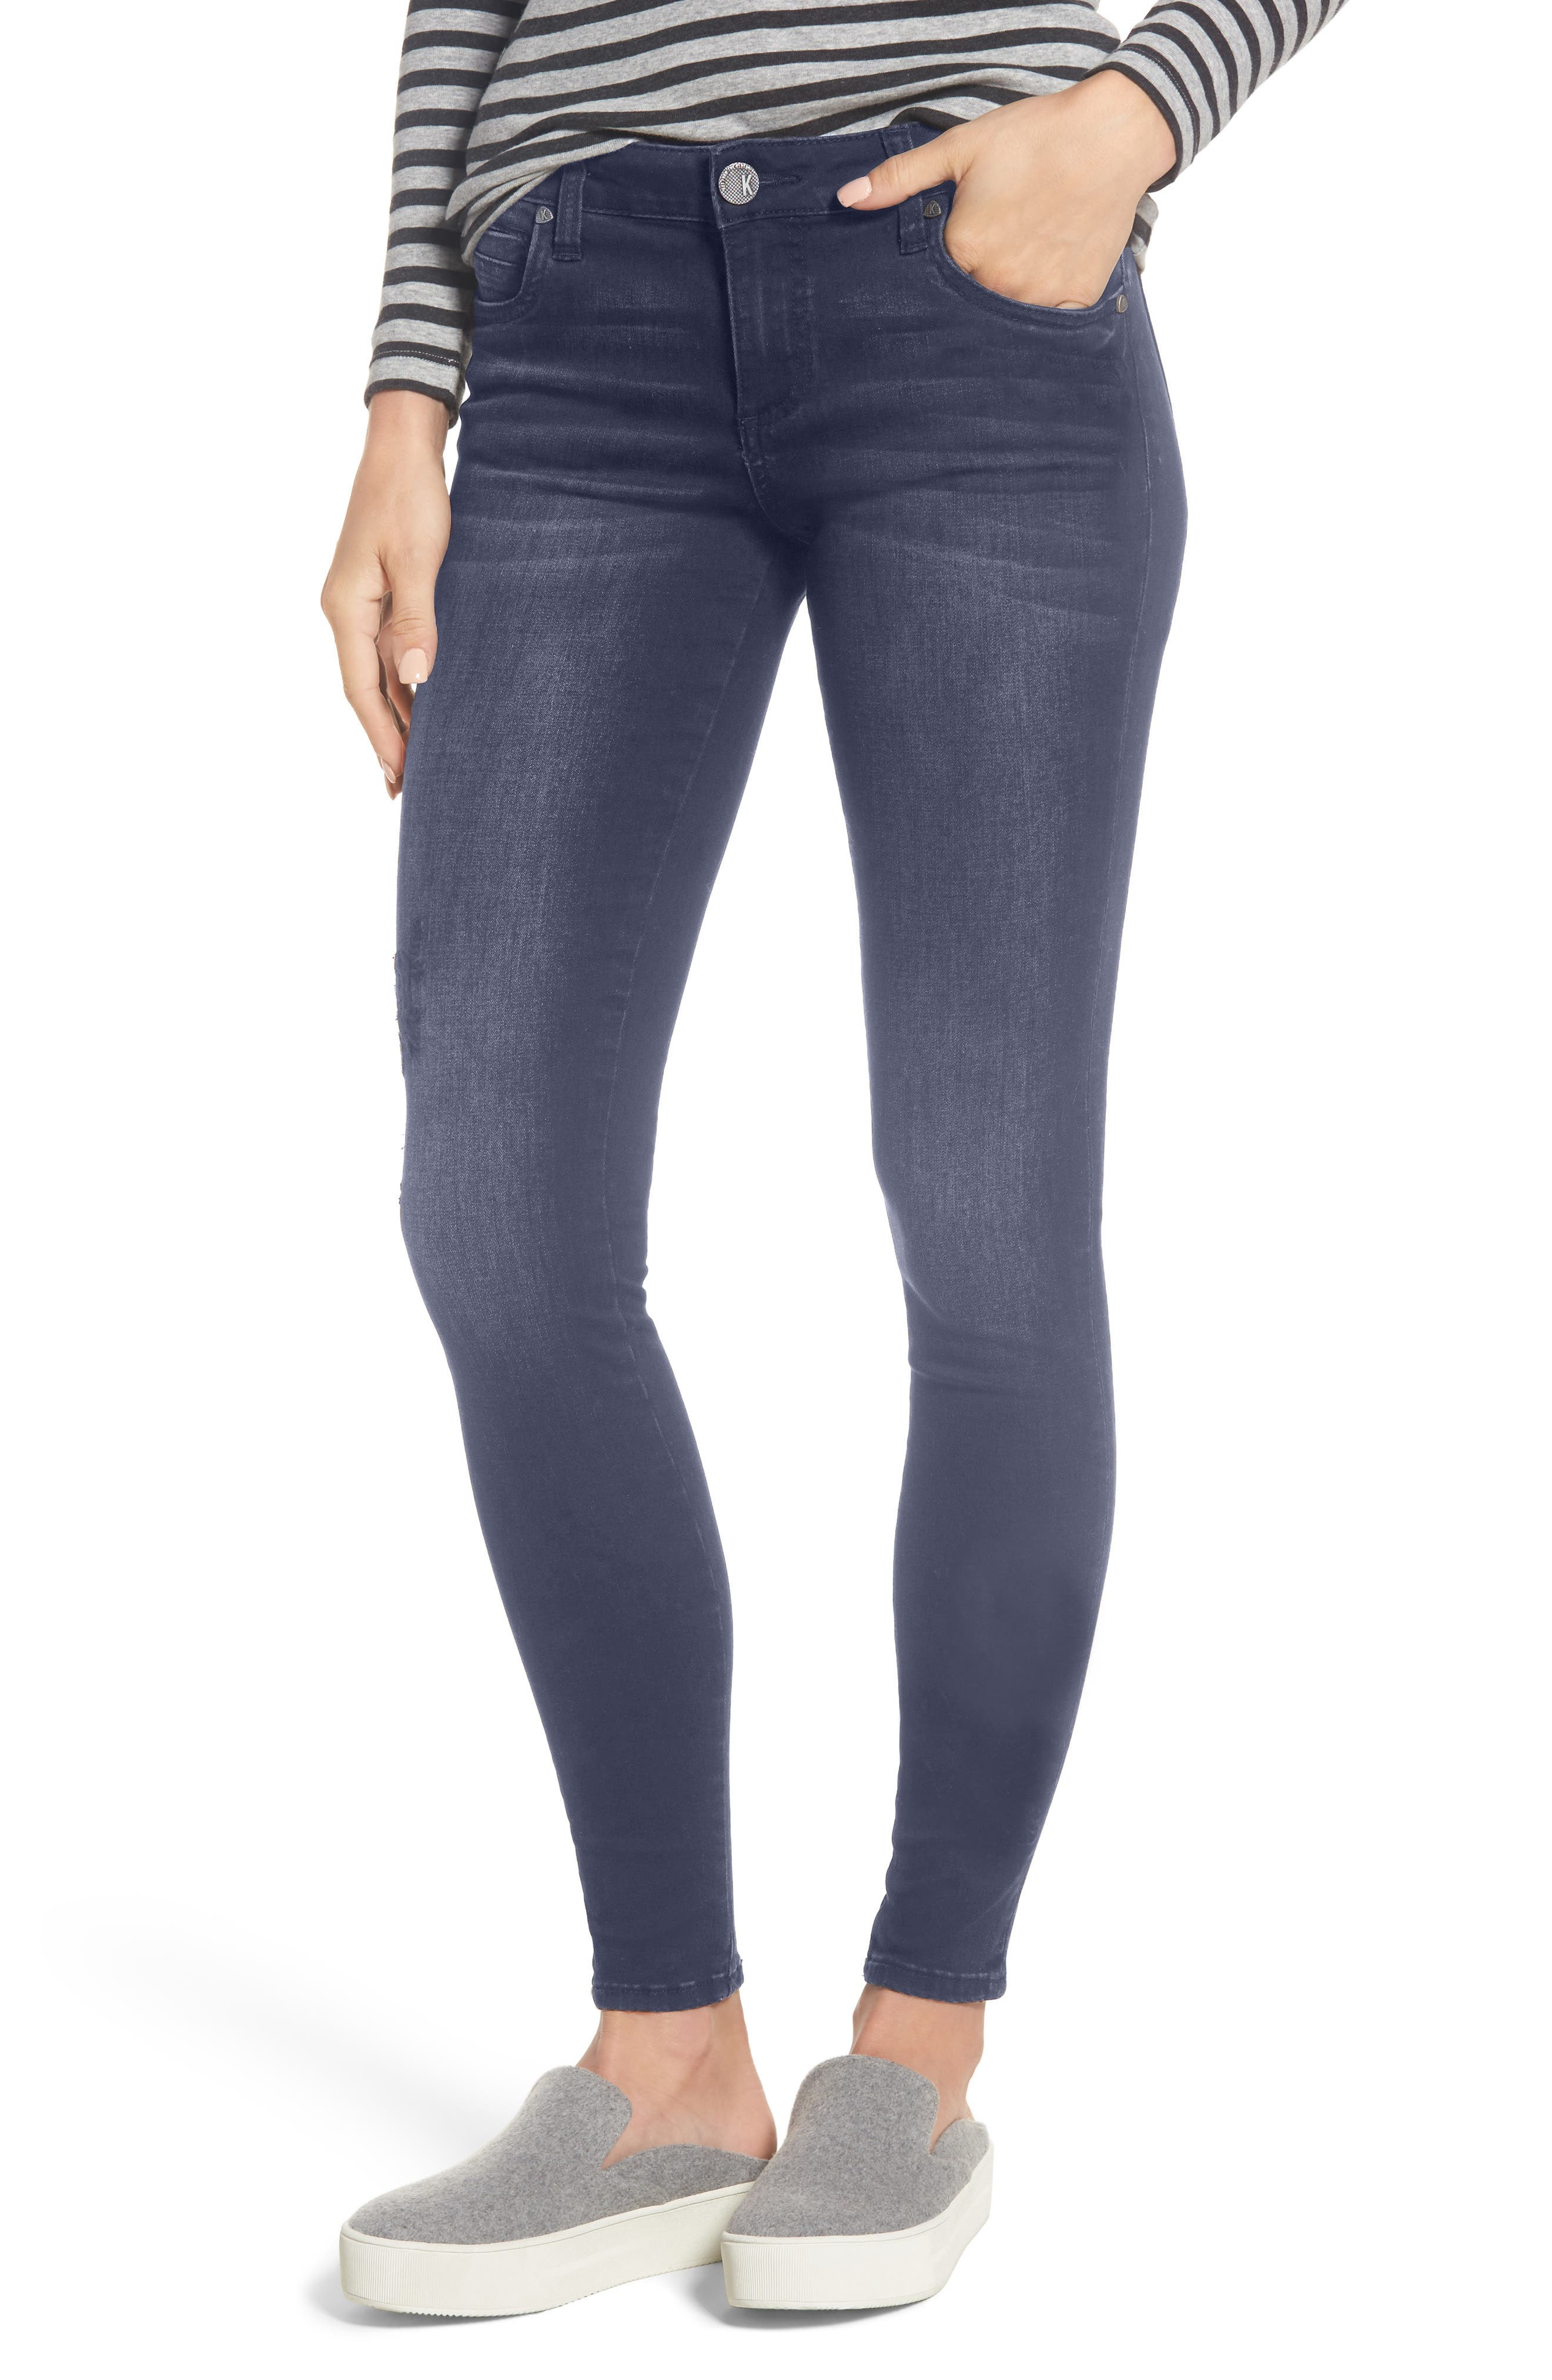 KUT from the Kloth Mia Embroidered Skinny Jeans (Quintessential) (Regular & Petite)